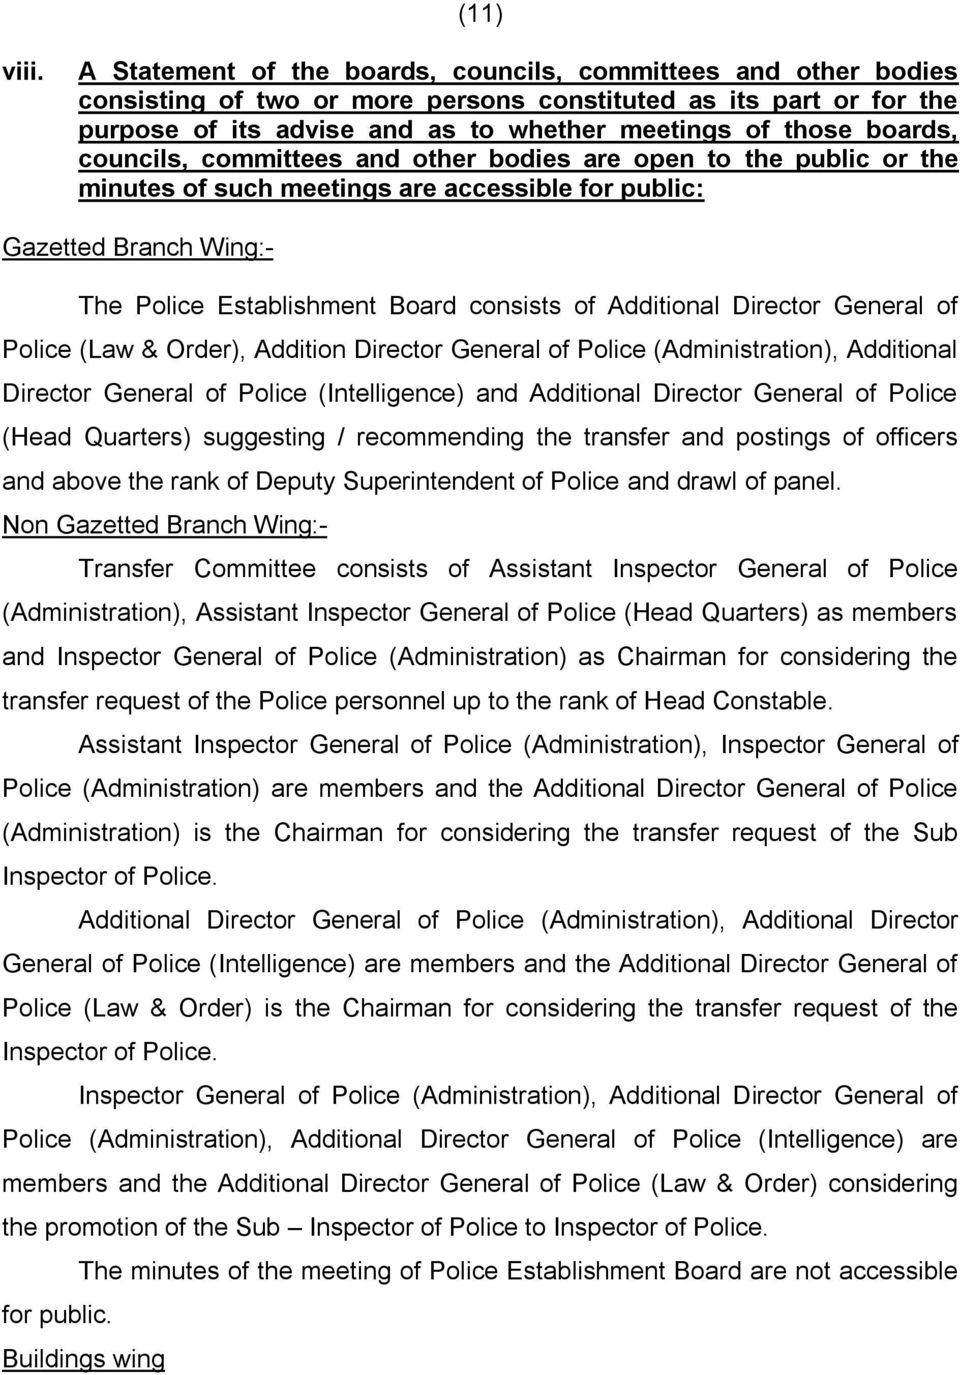 councils, committees and other bodies are open to the public or the minutes of such meetings are accessible for public: Gazetted Branch Wing:- The Police Establishment Board consists of Additional